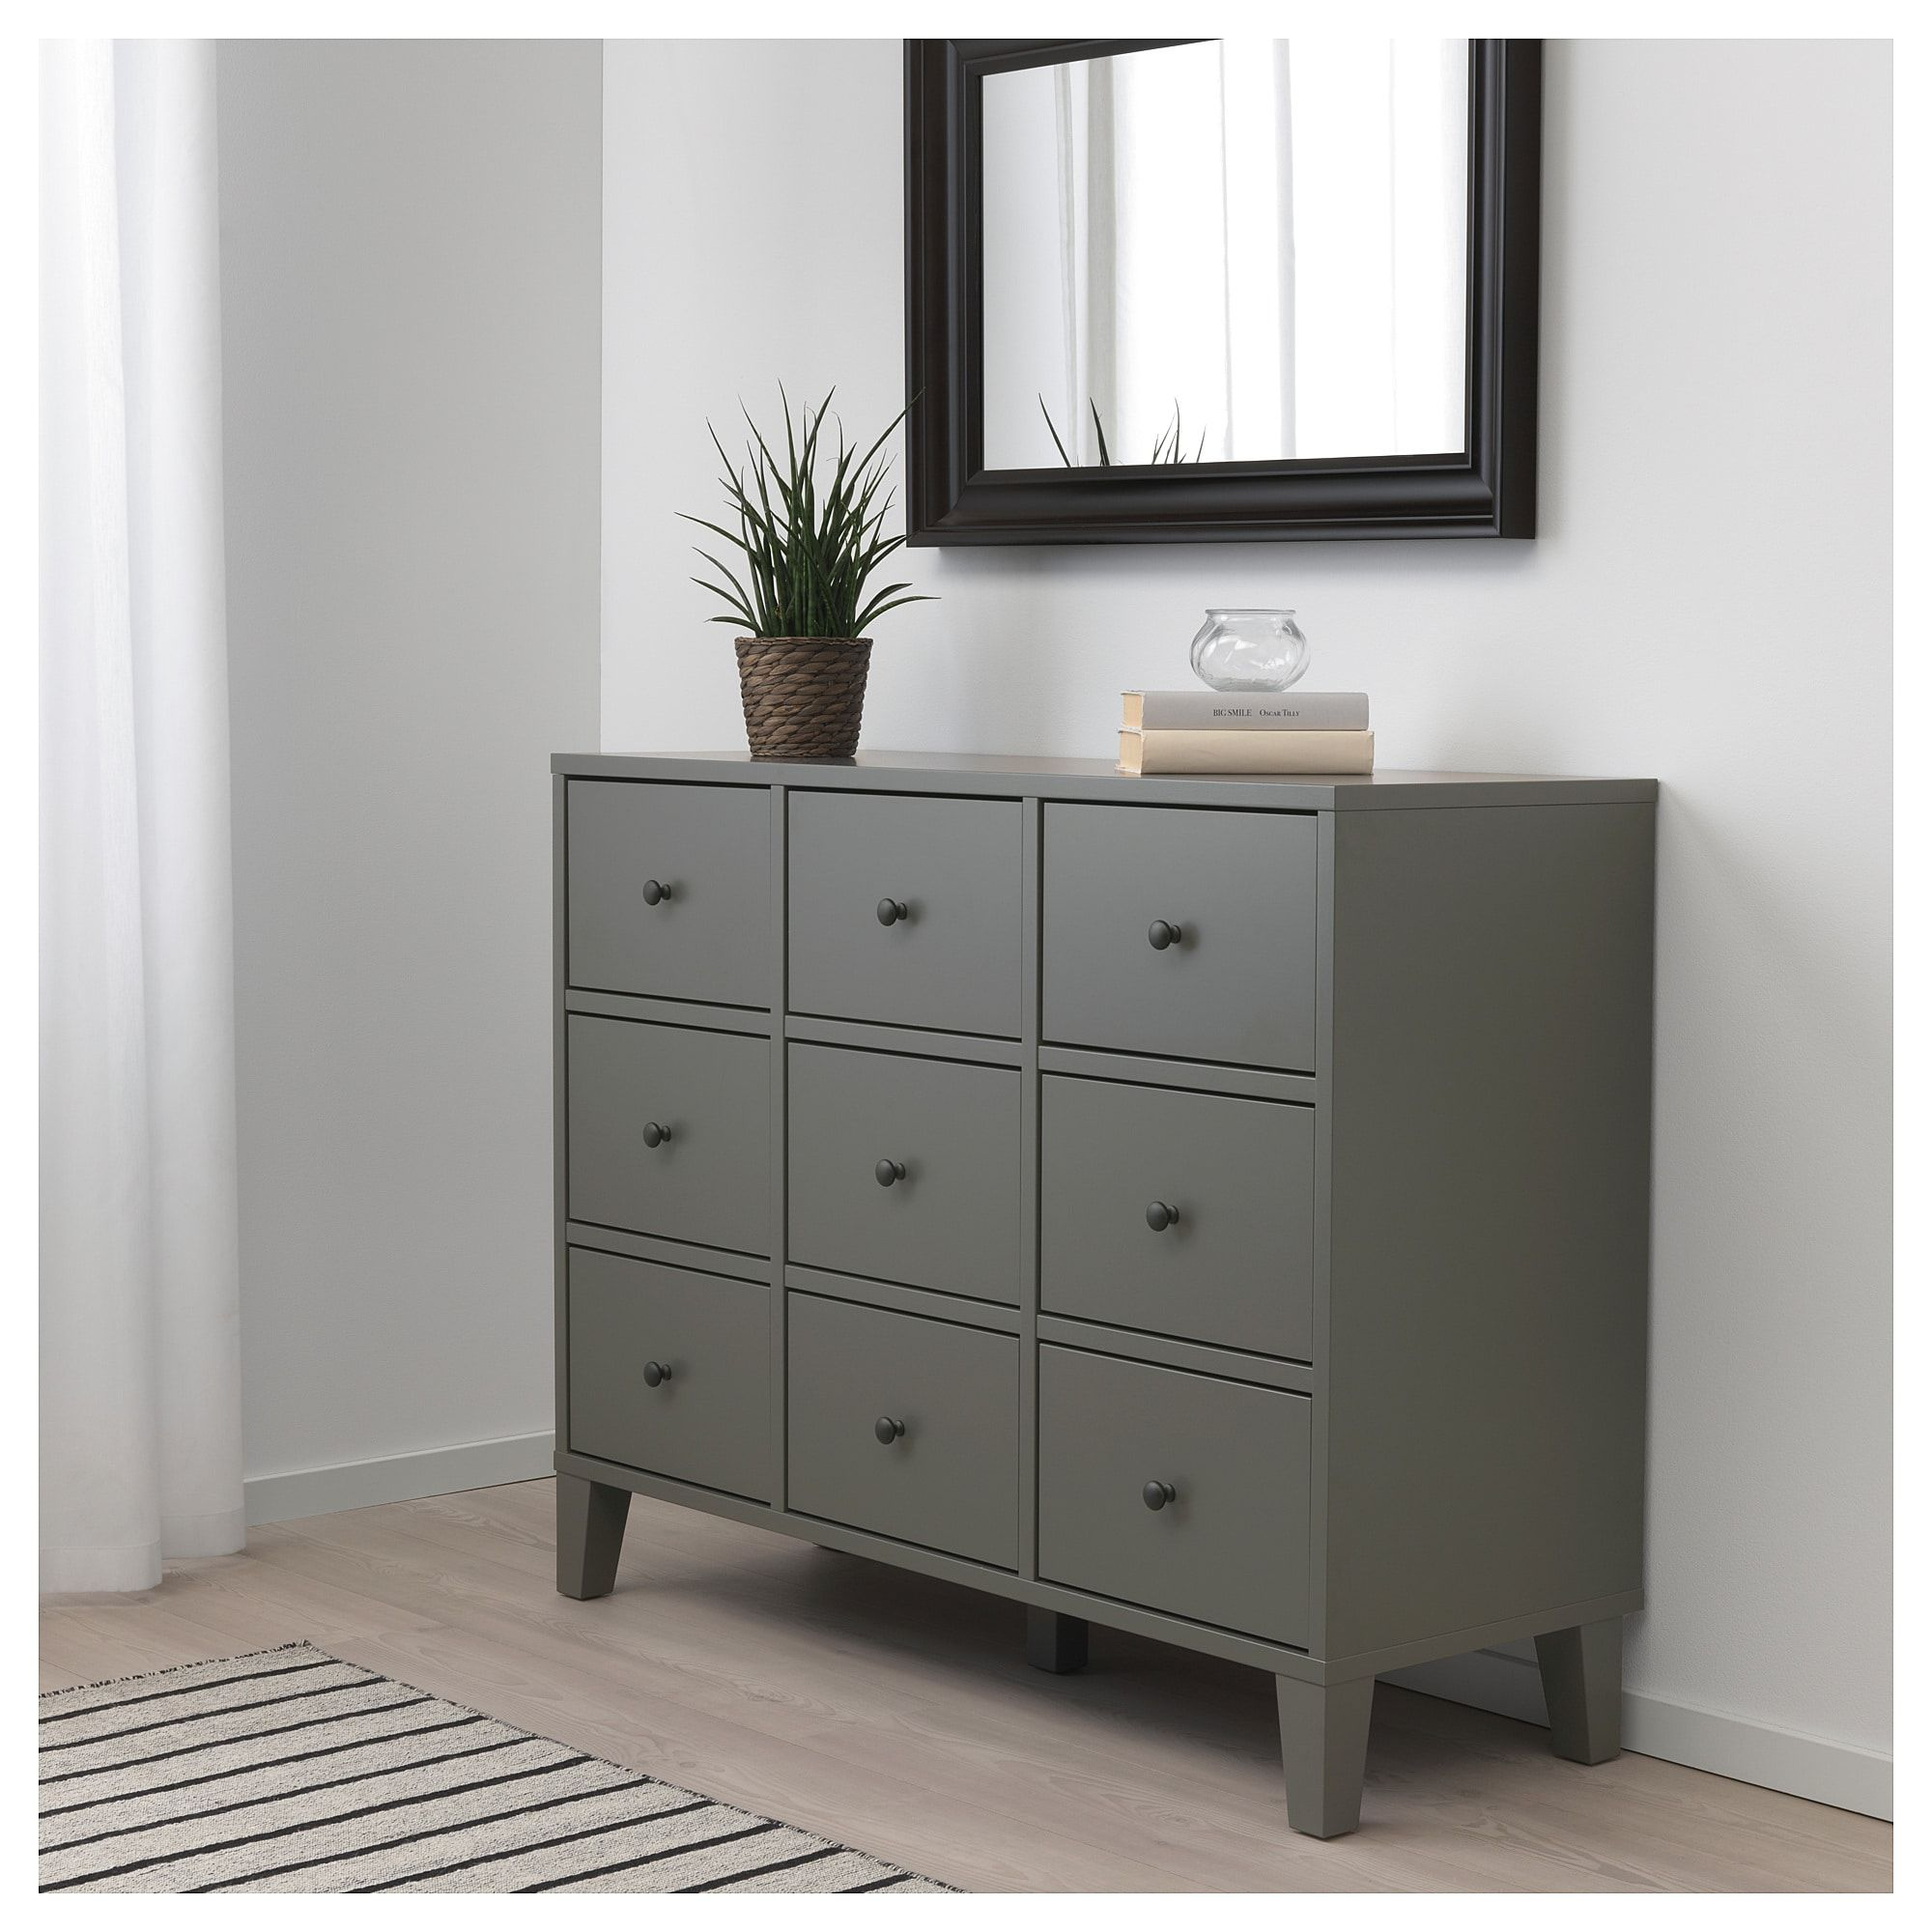 Bedroom hallway storage Modern Snow white 6 drawer wide chest of drawers